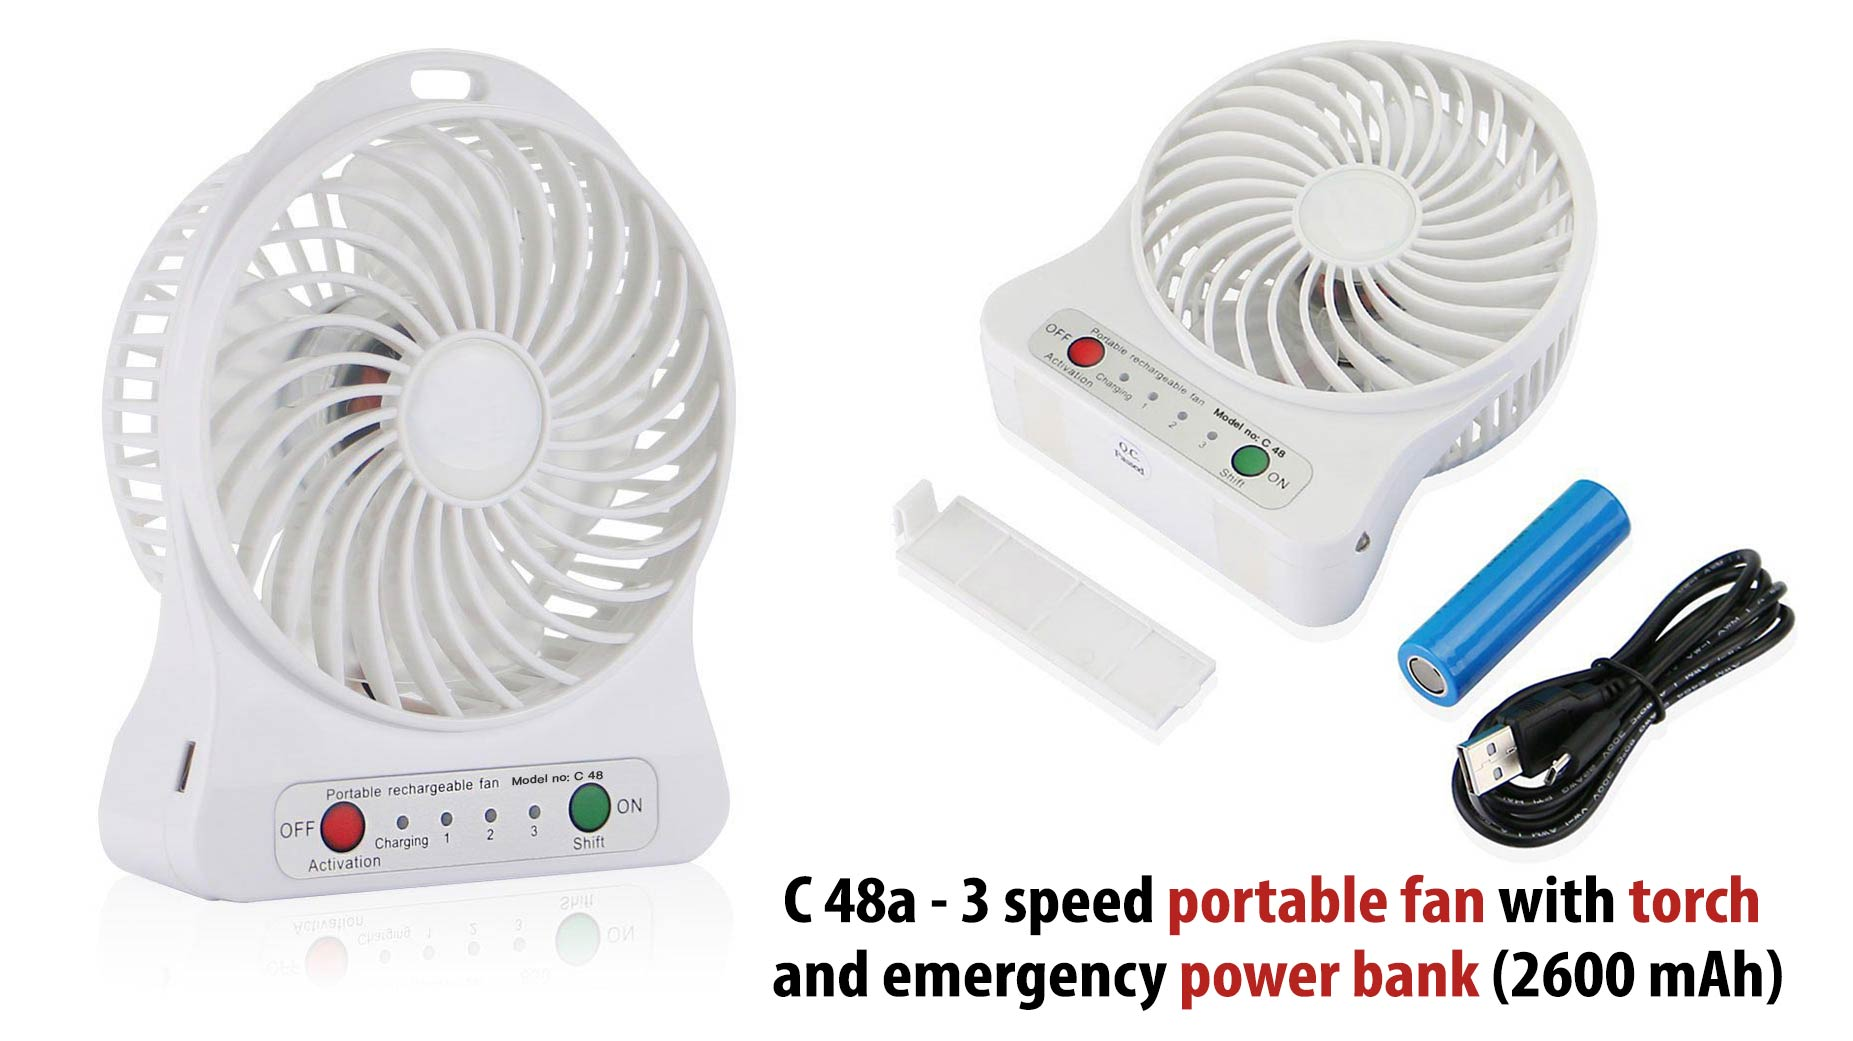 C48A - 3 SPEED PORTABLE FAN WITH TORCH AND EMERGENCY POWER BANK (2600 MAH)